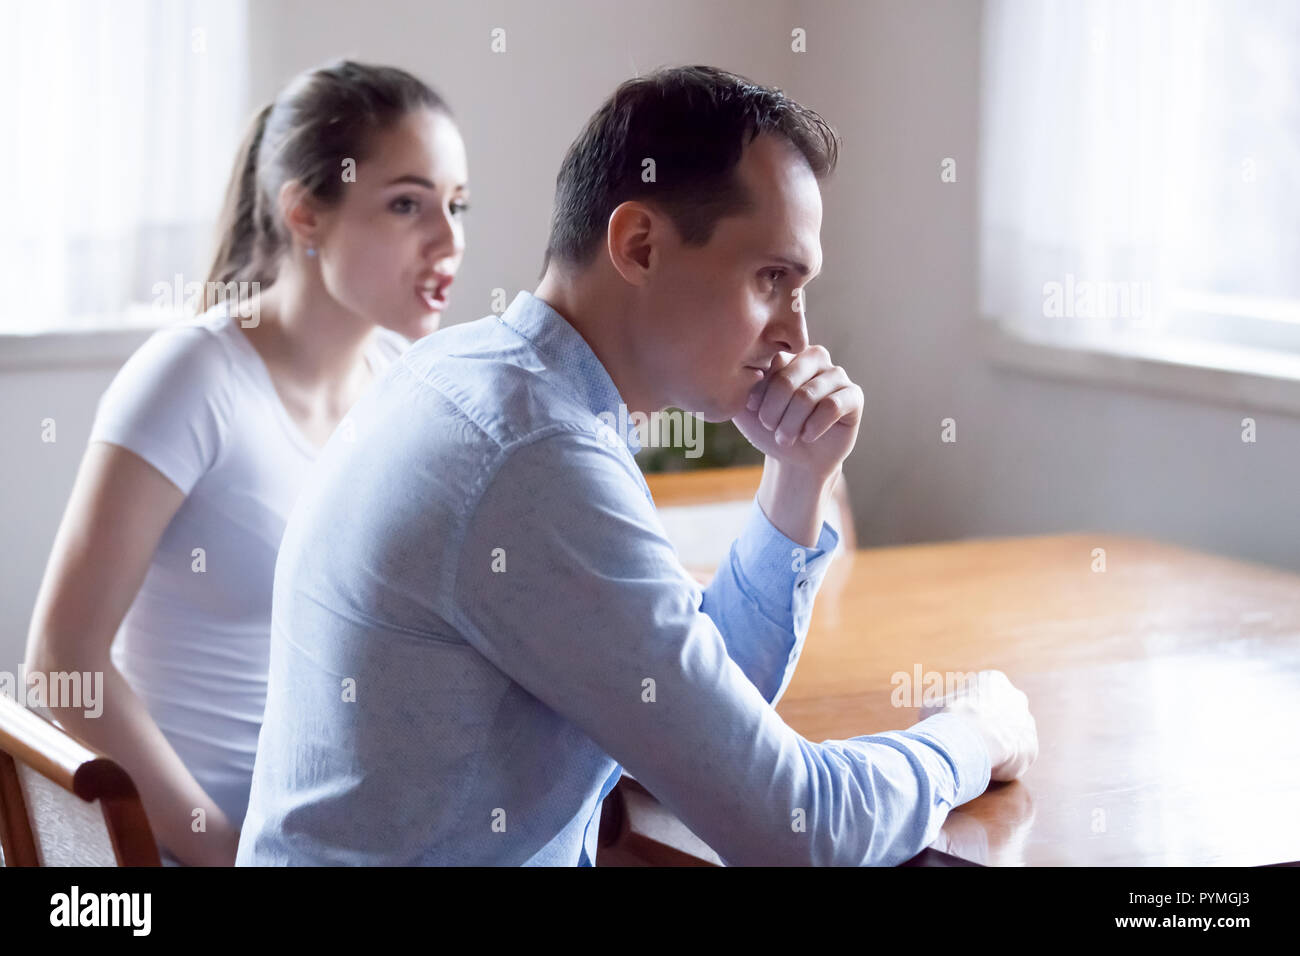 Indignant angry woman talking arguing with husband - Stock Image